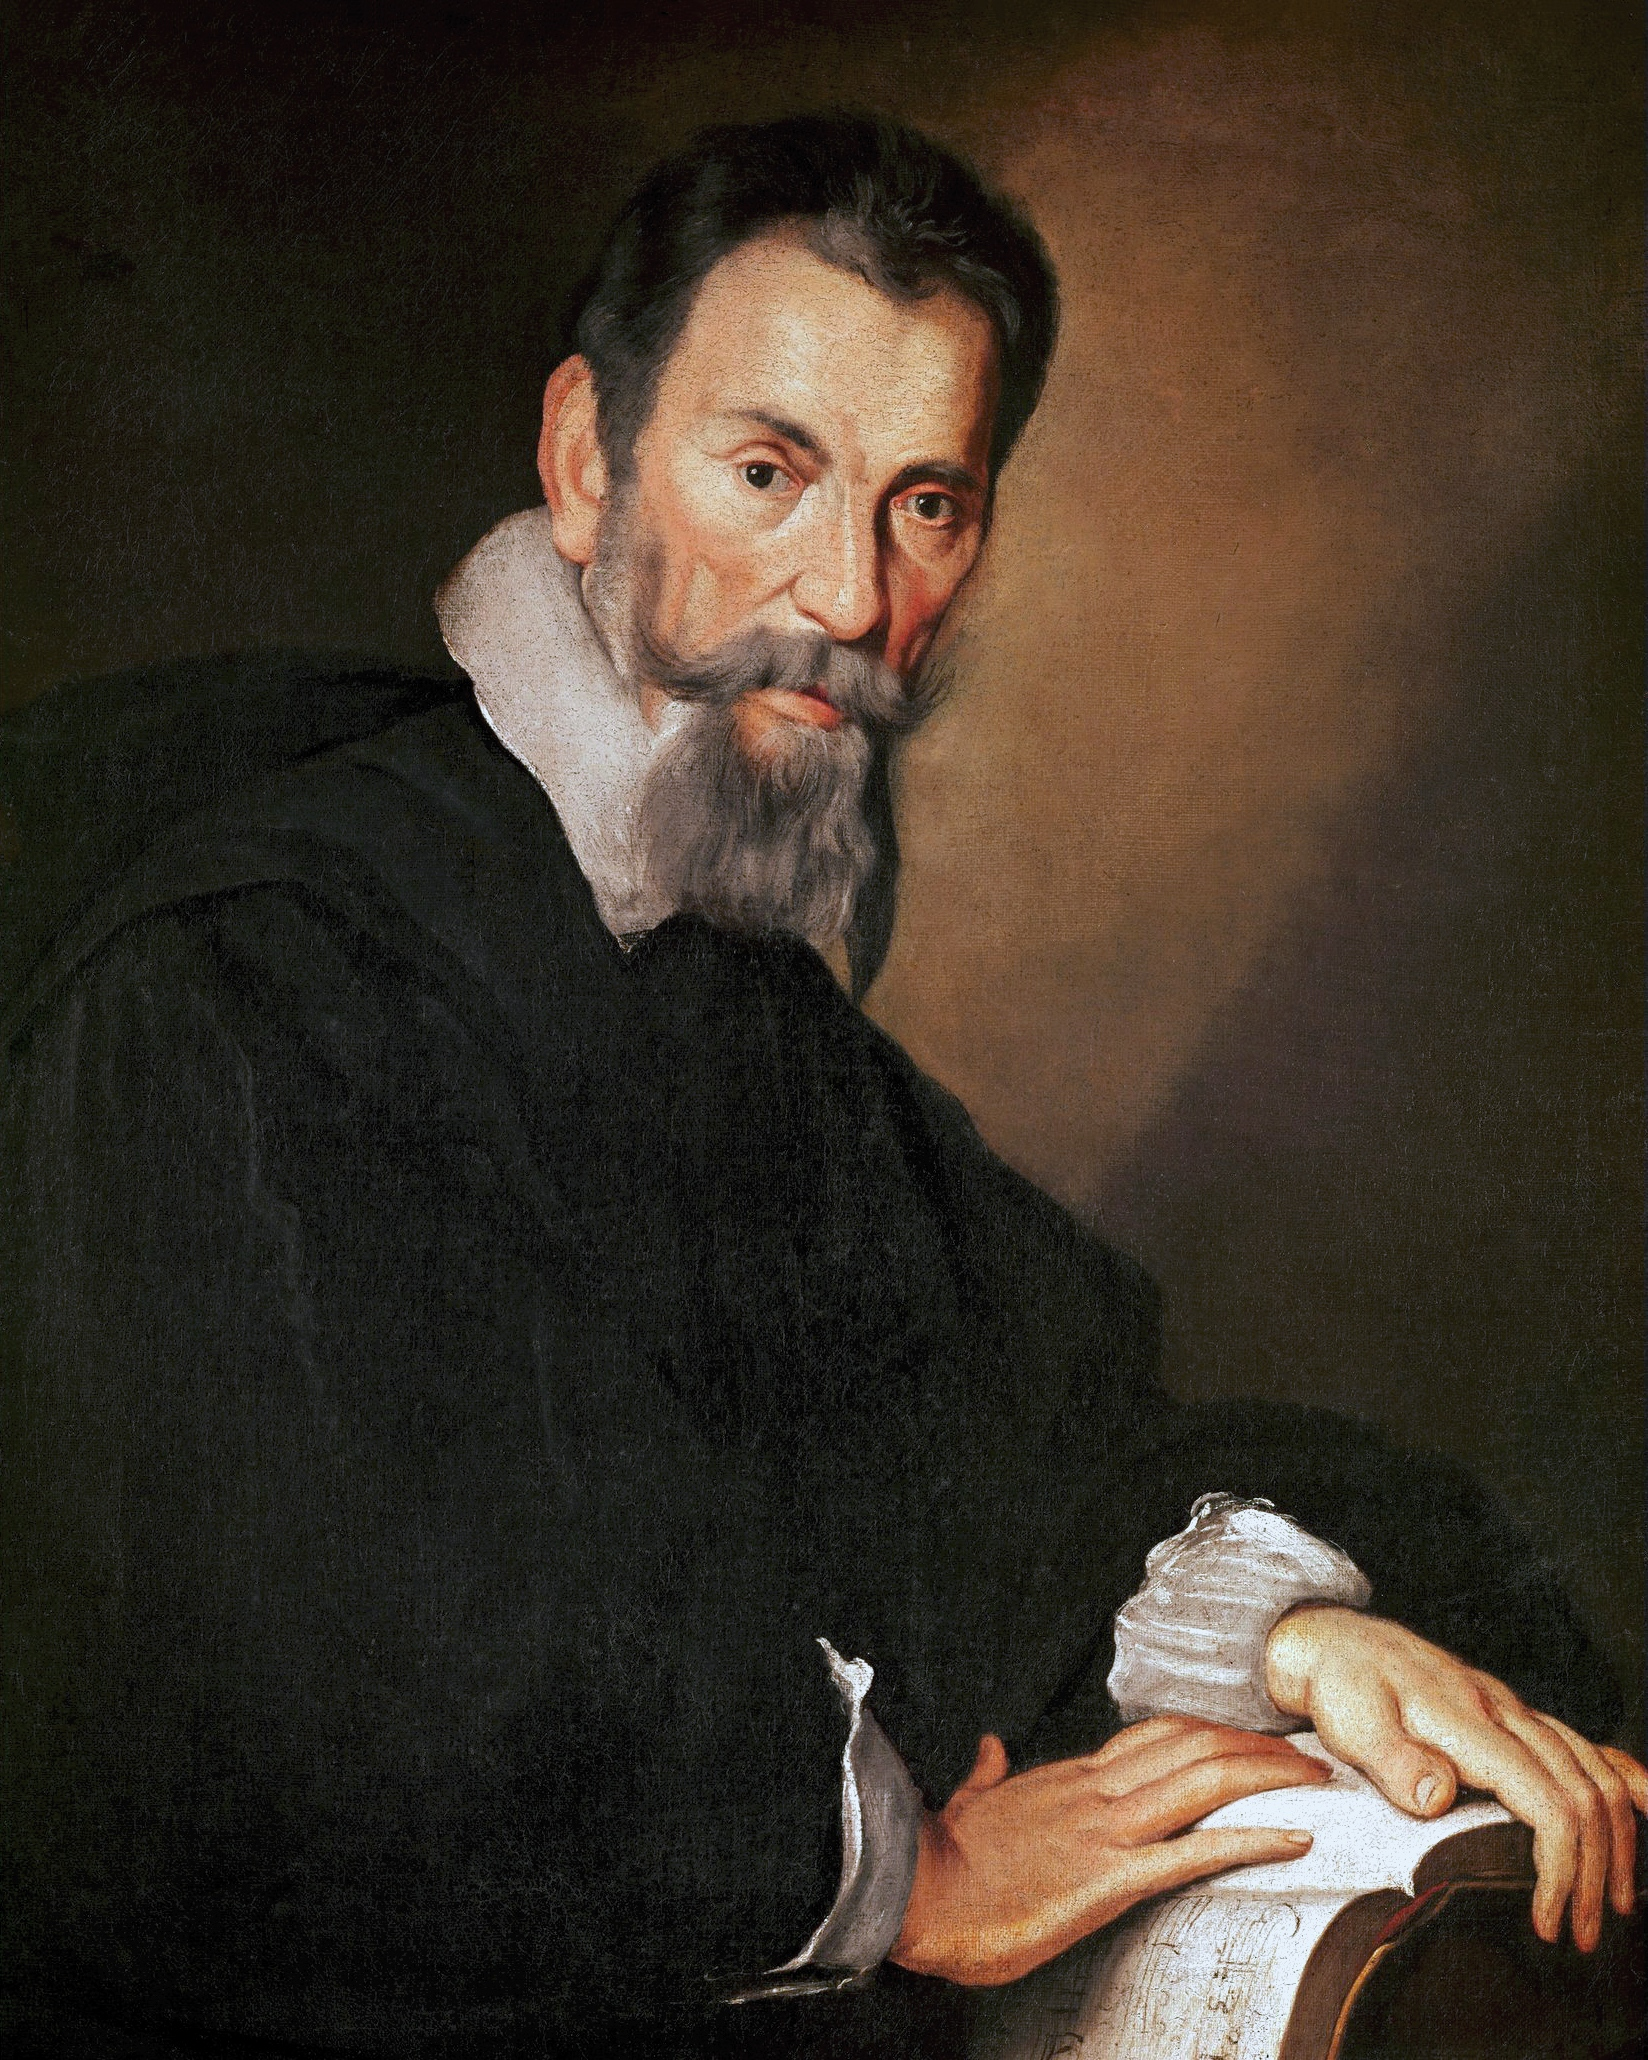 Biography of Claudio Monteverdi